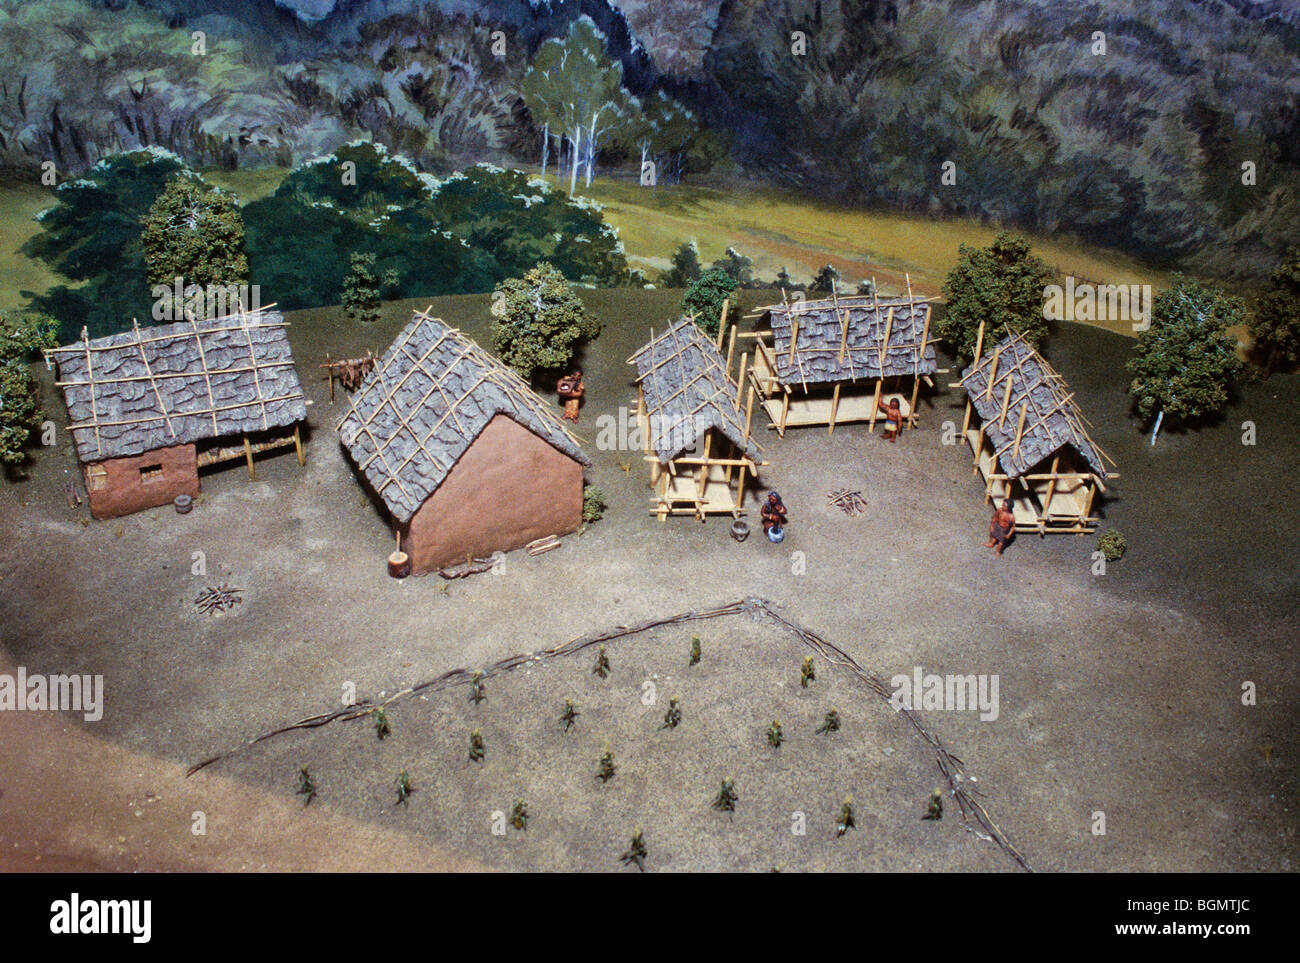 Model of a traditional Cherokee village with winter and summer homes and a village garden. Stock Photo